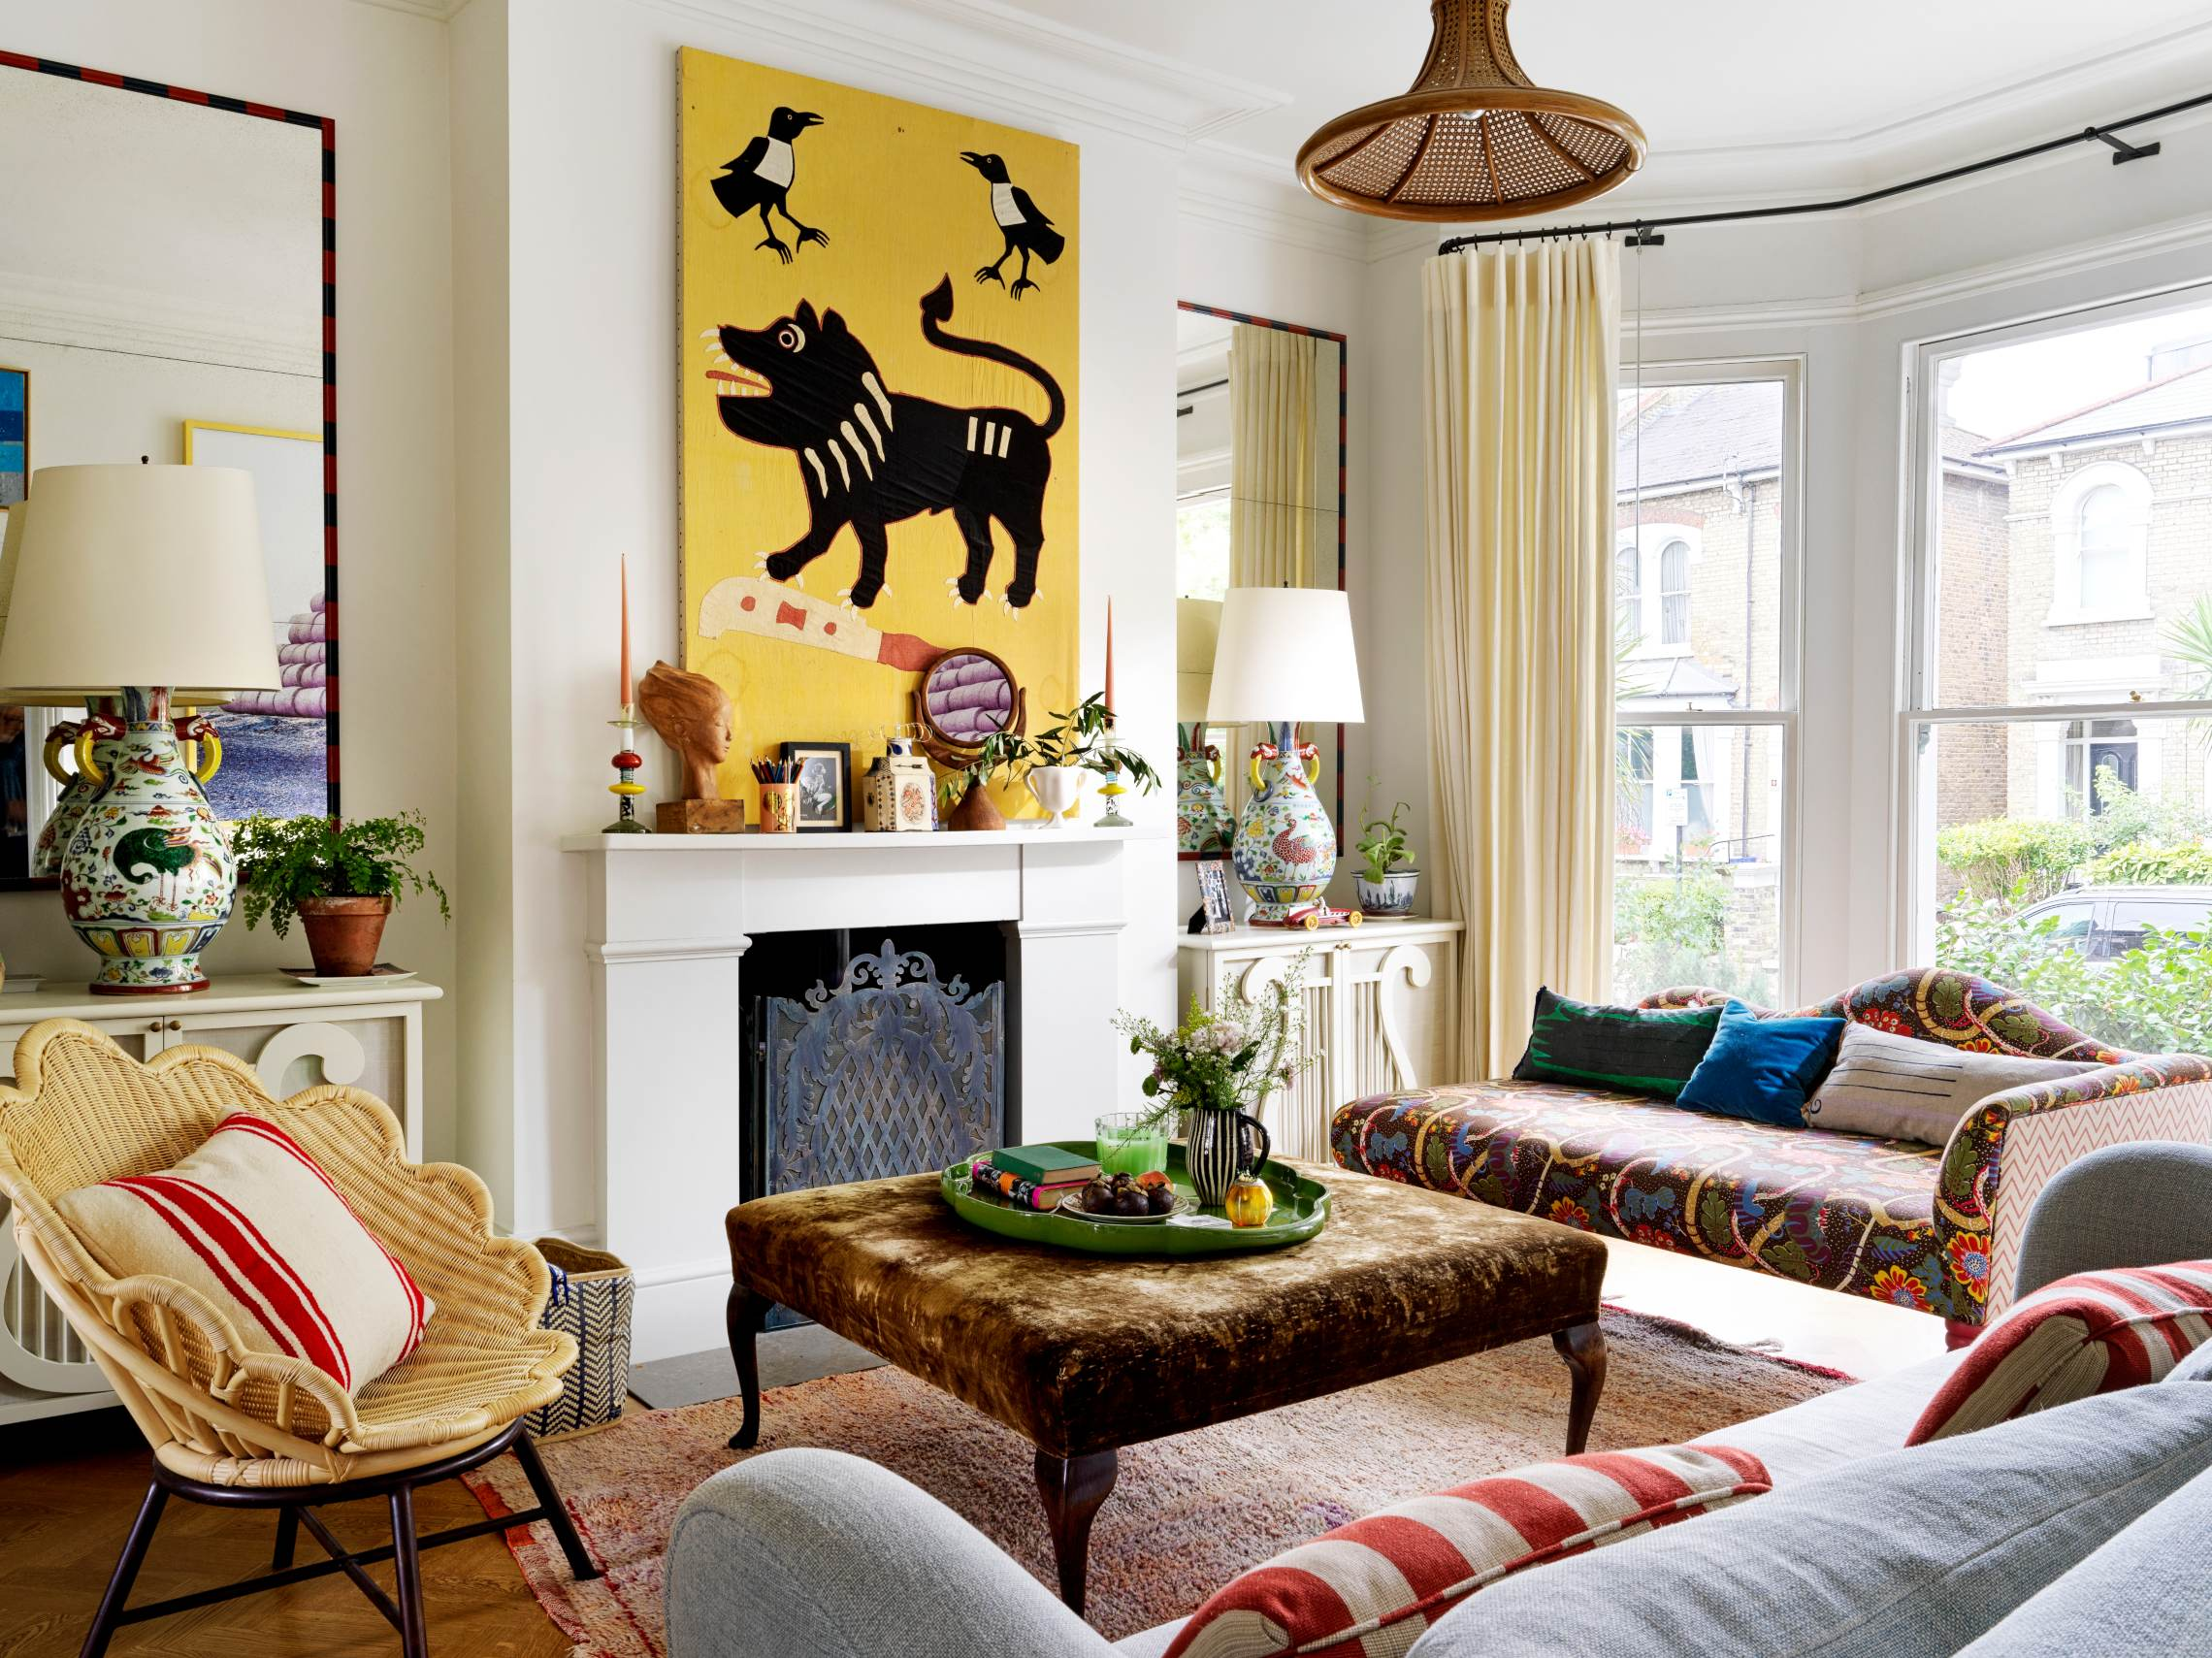 The living room in Beata Heuman's Hammersmith home